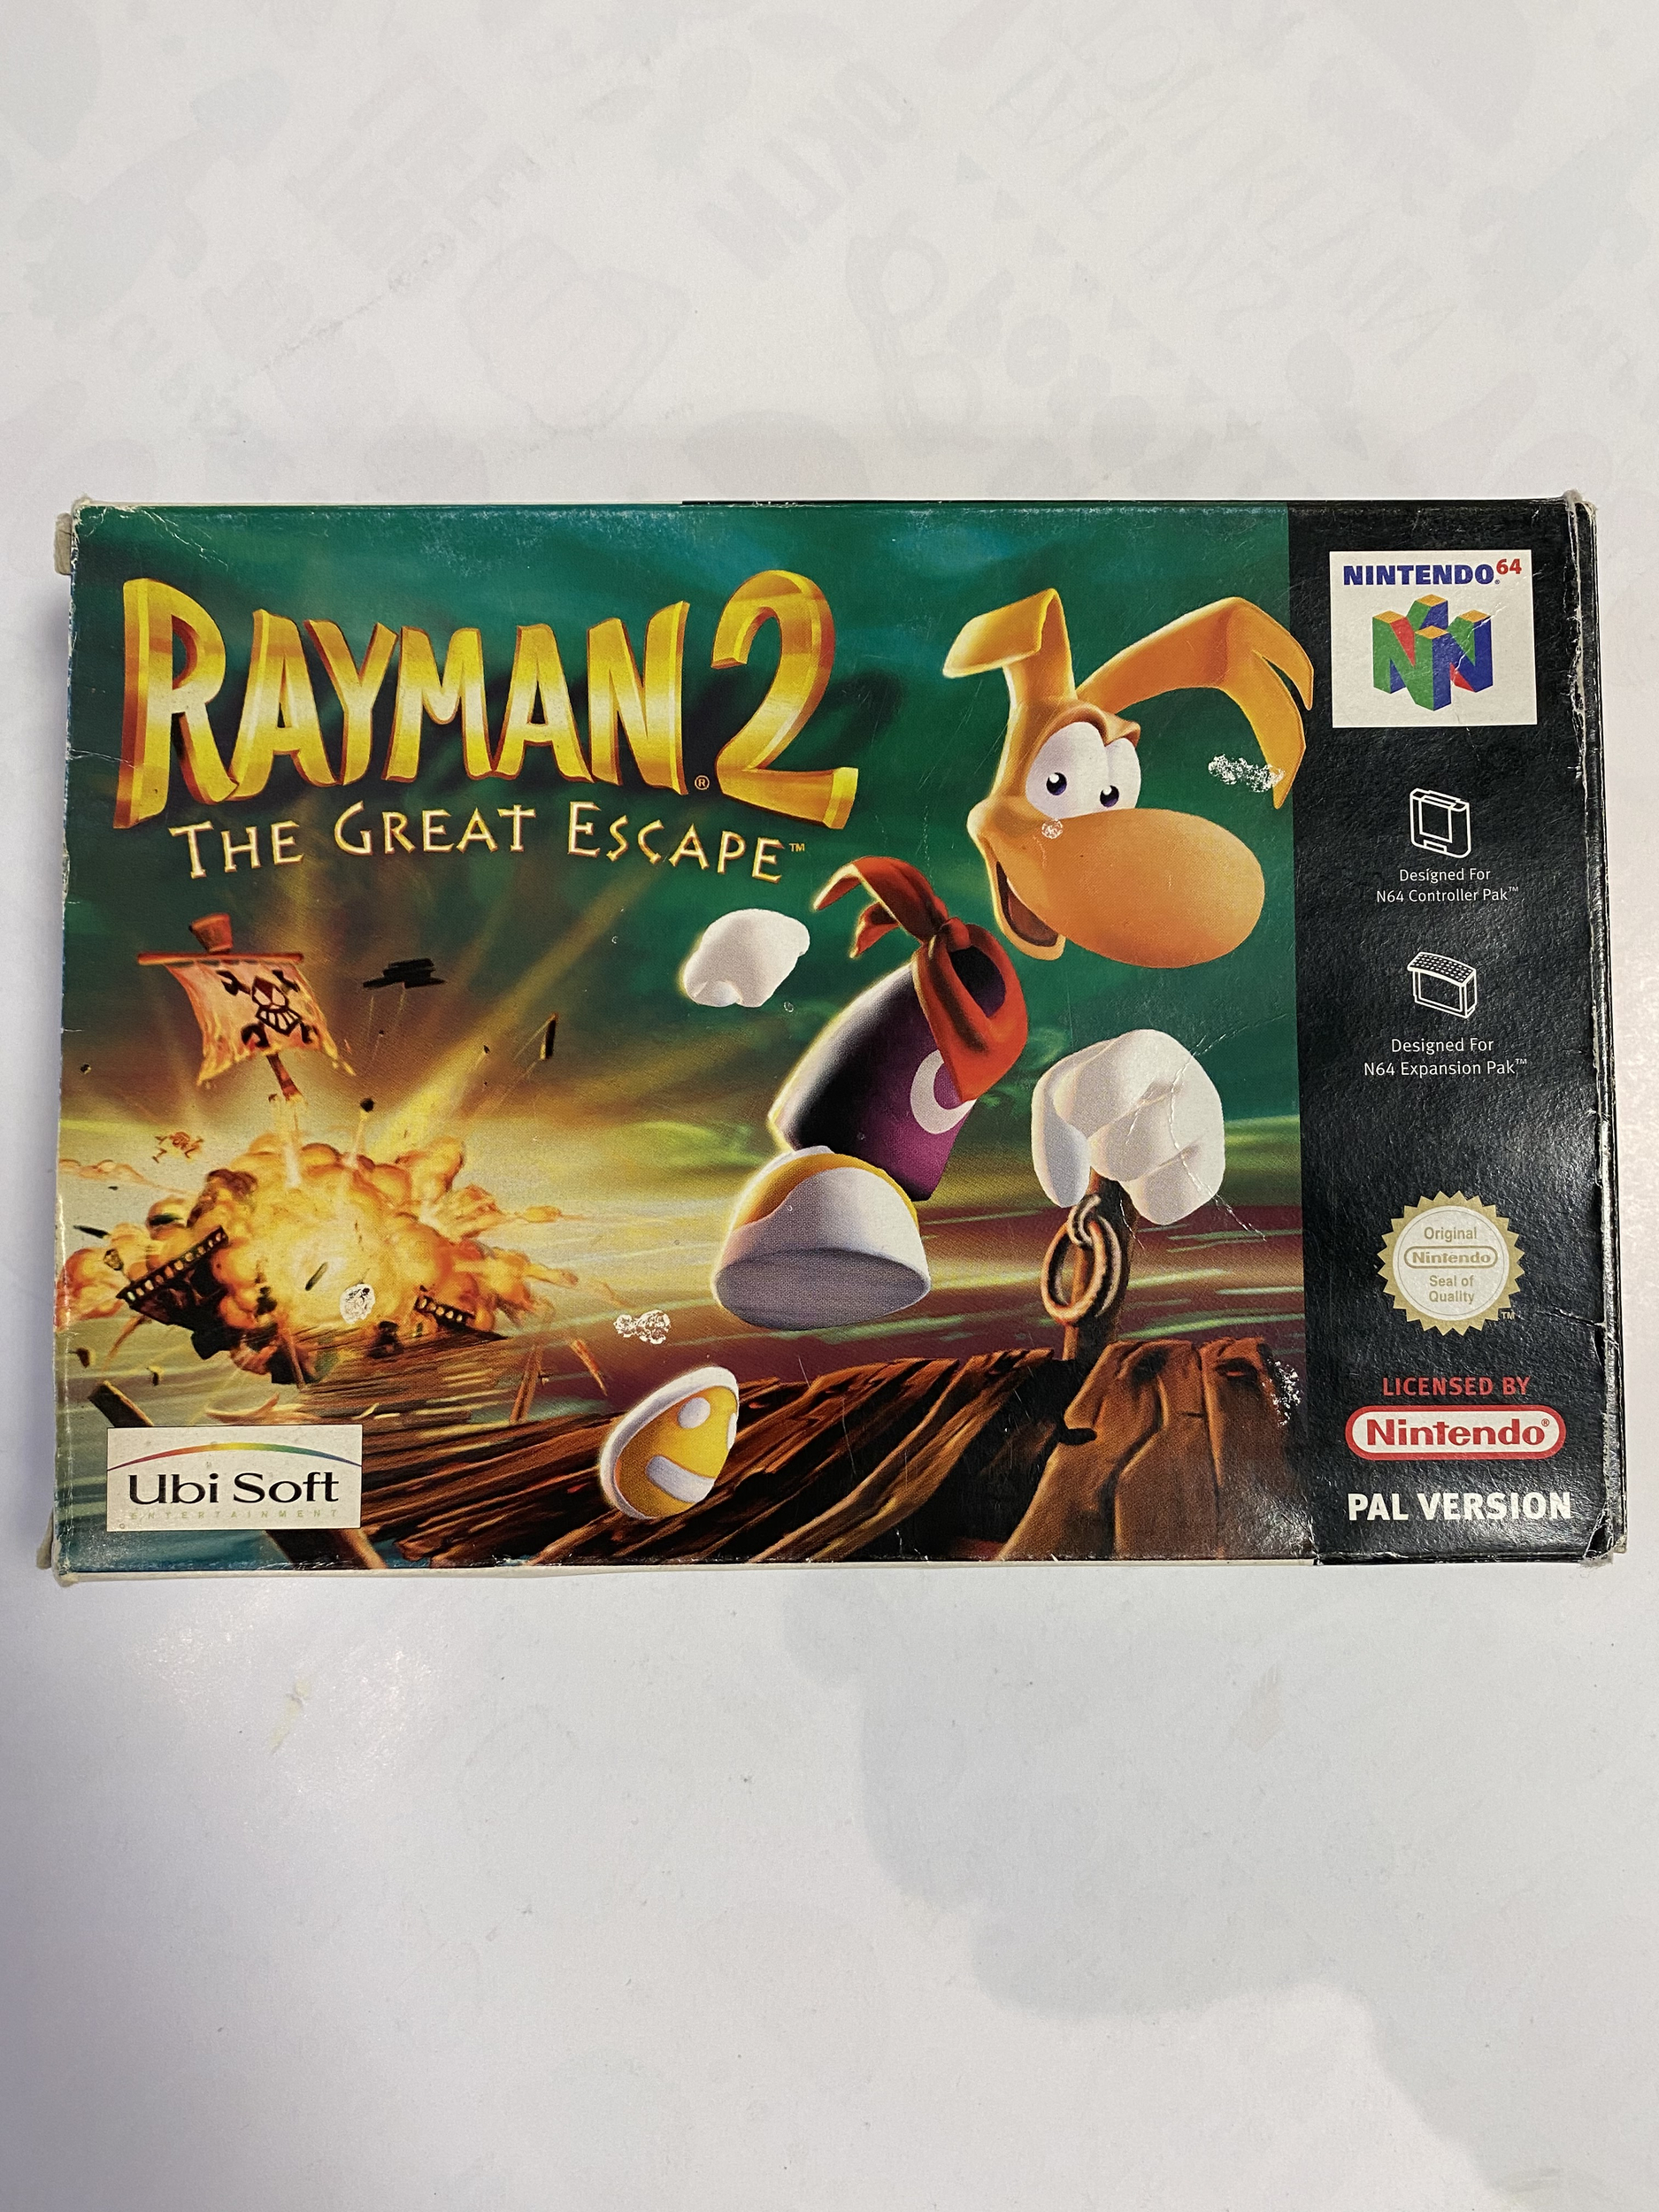 Nintendo 64 - Rayman 2 The Great Escape occasion